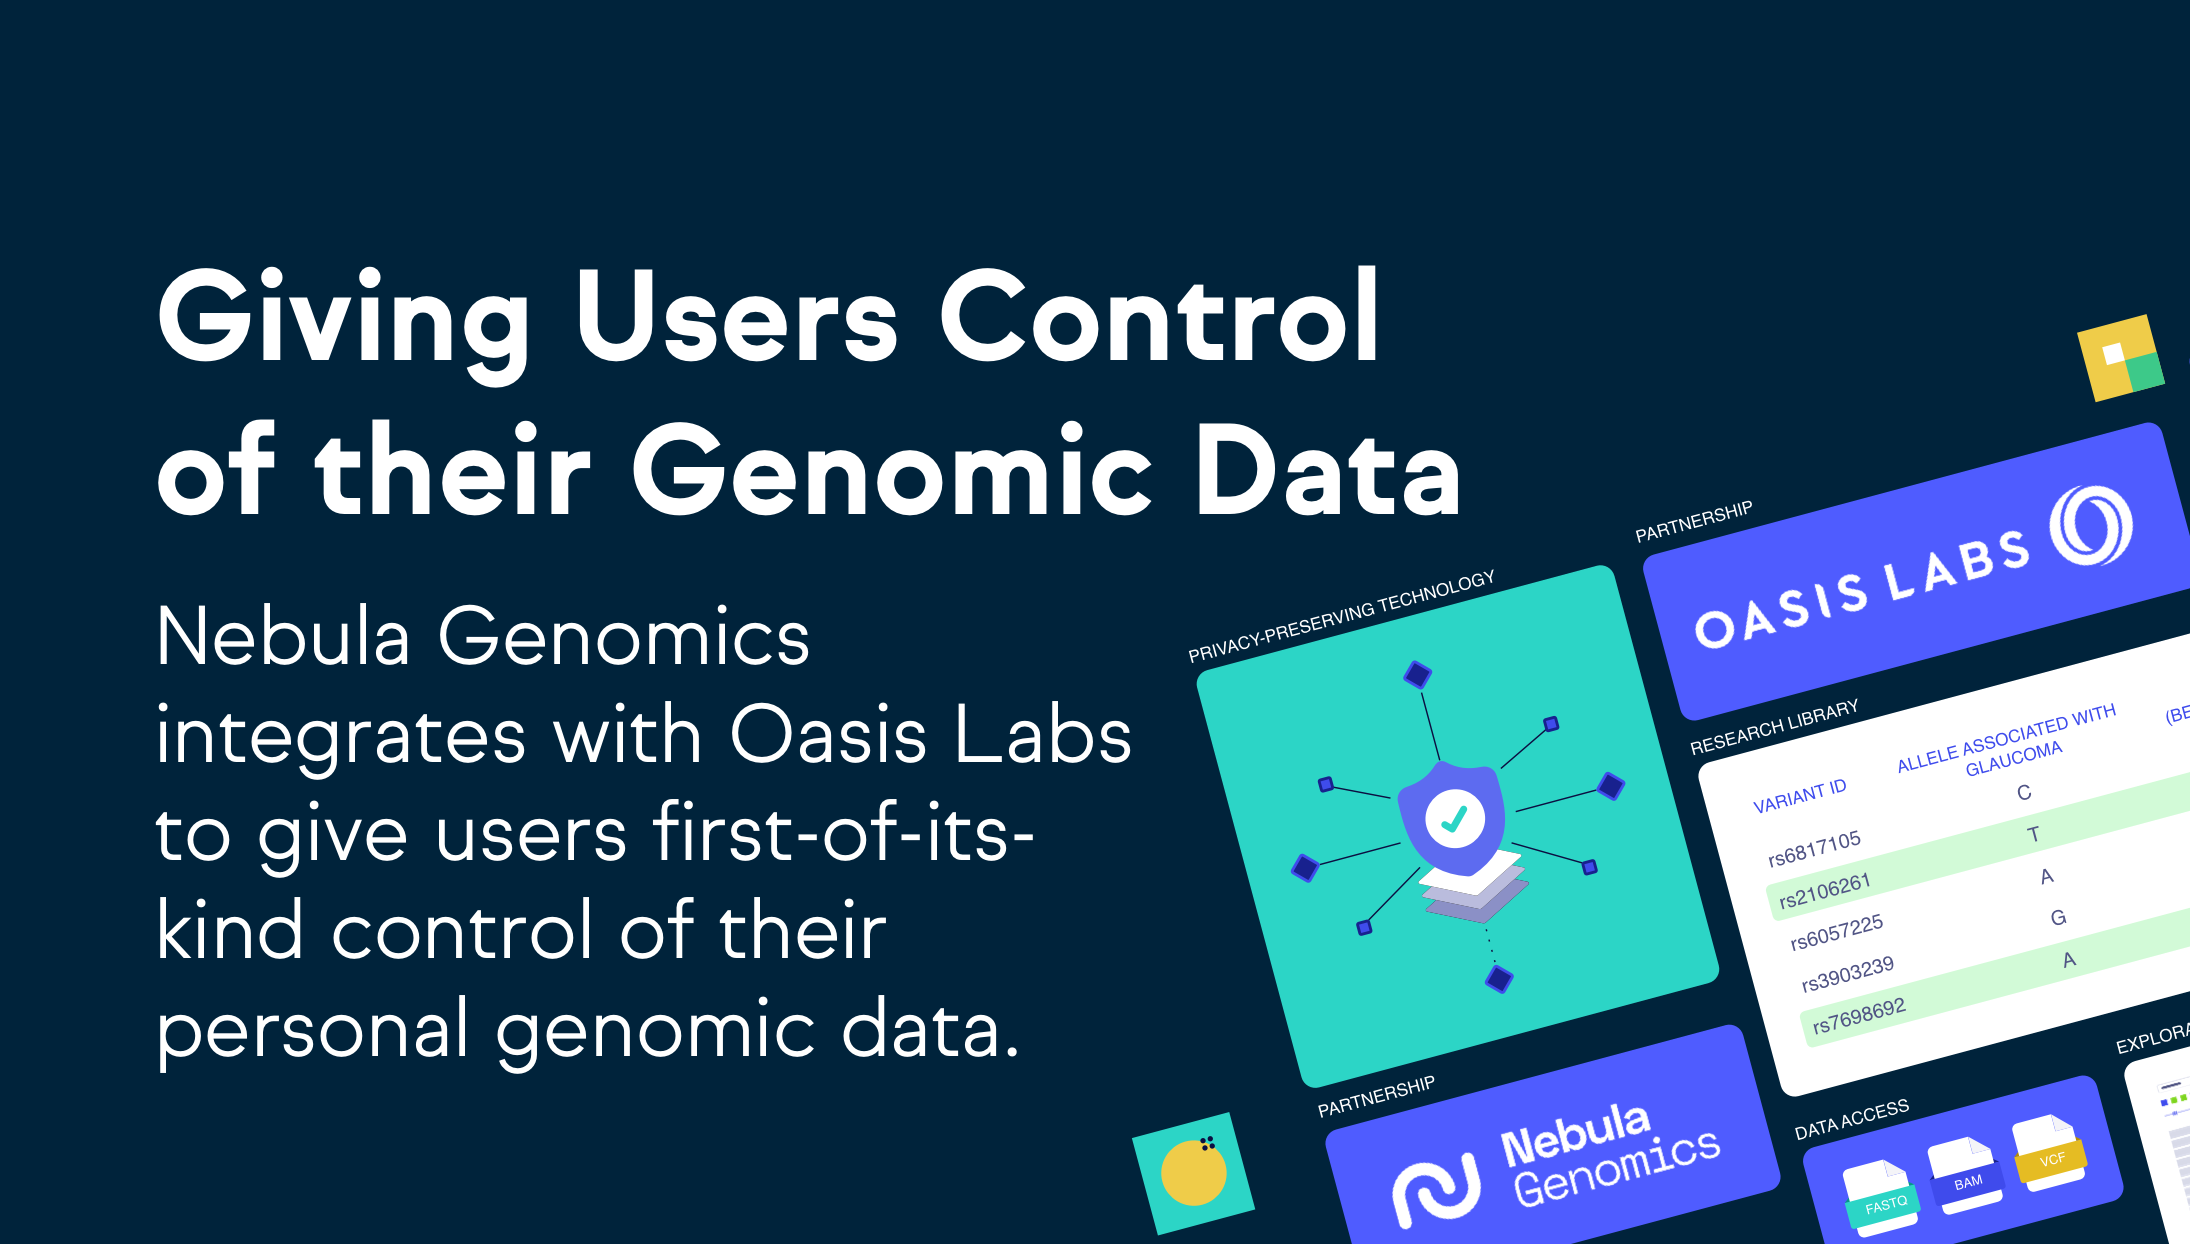 Giving Users Control of their Genomic Data